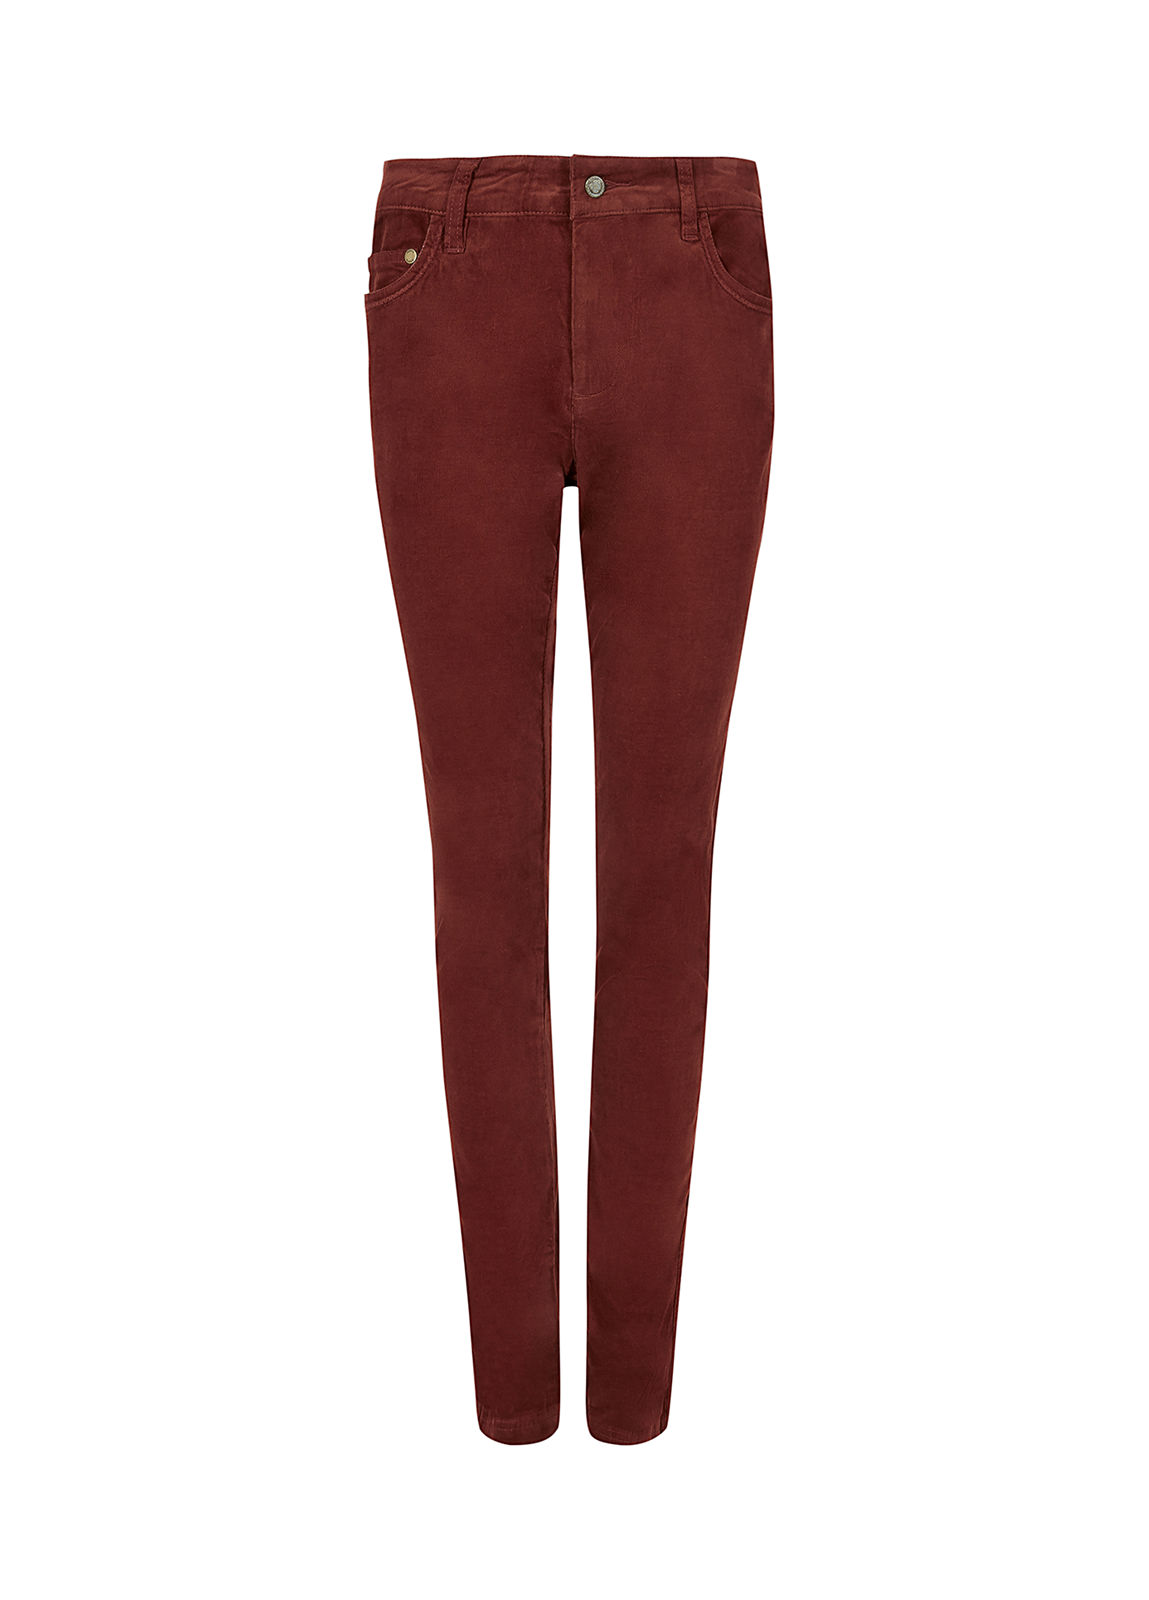 Dubarry_Honeysuckle Jeans - Russet_Image_2